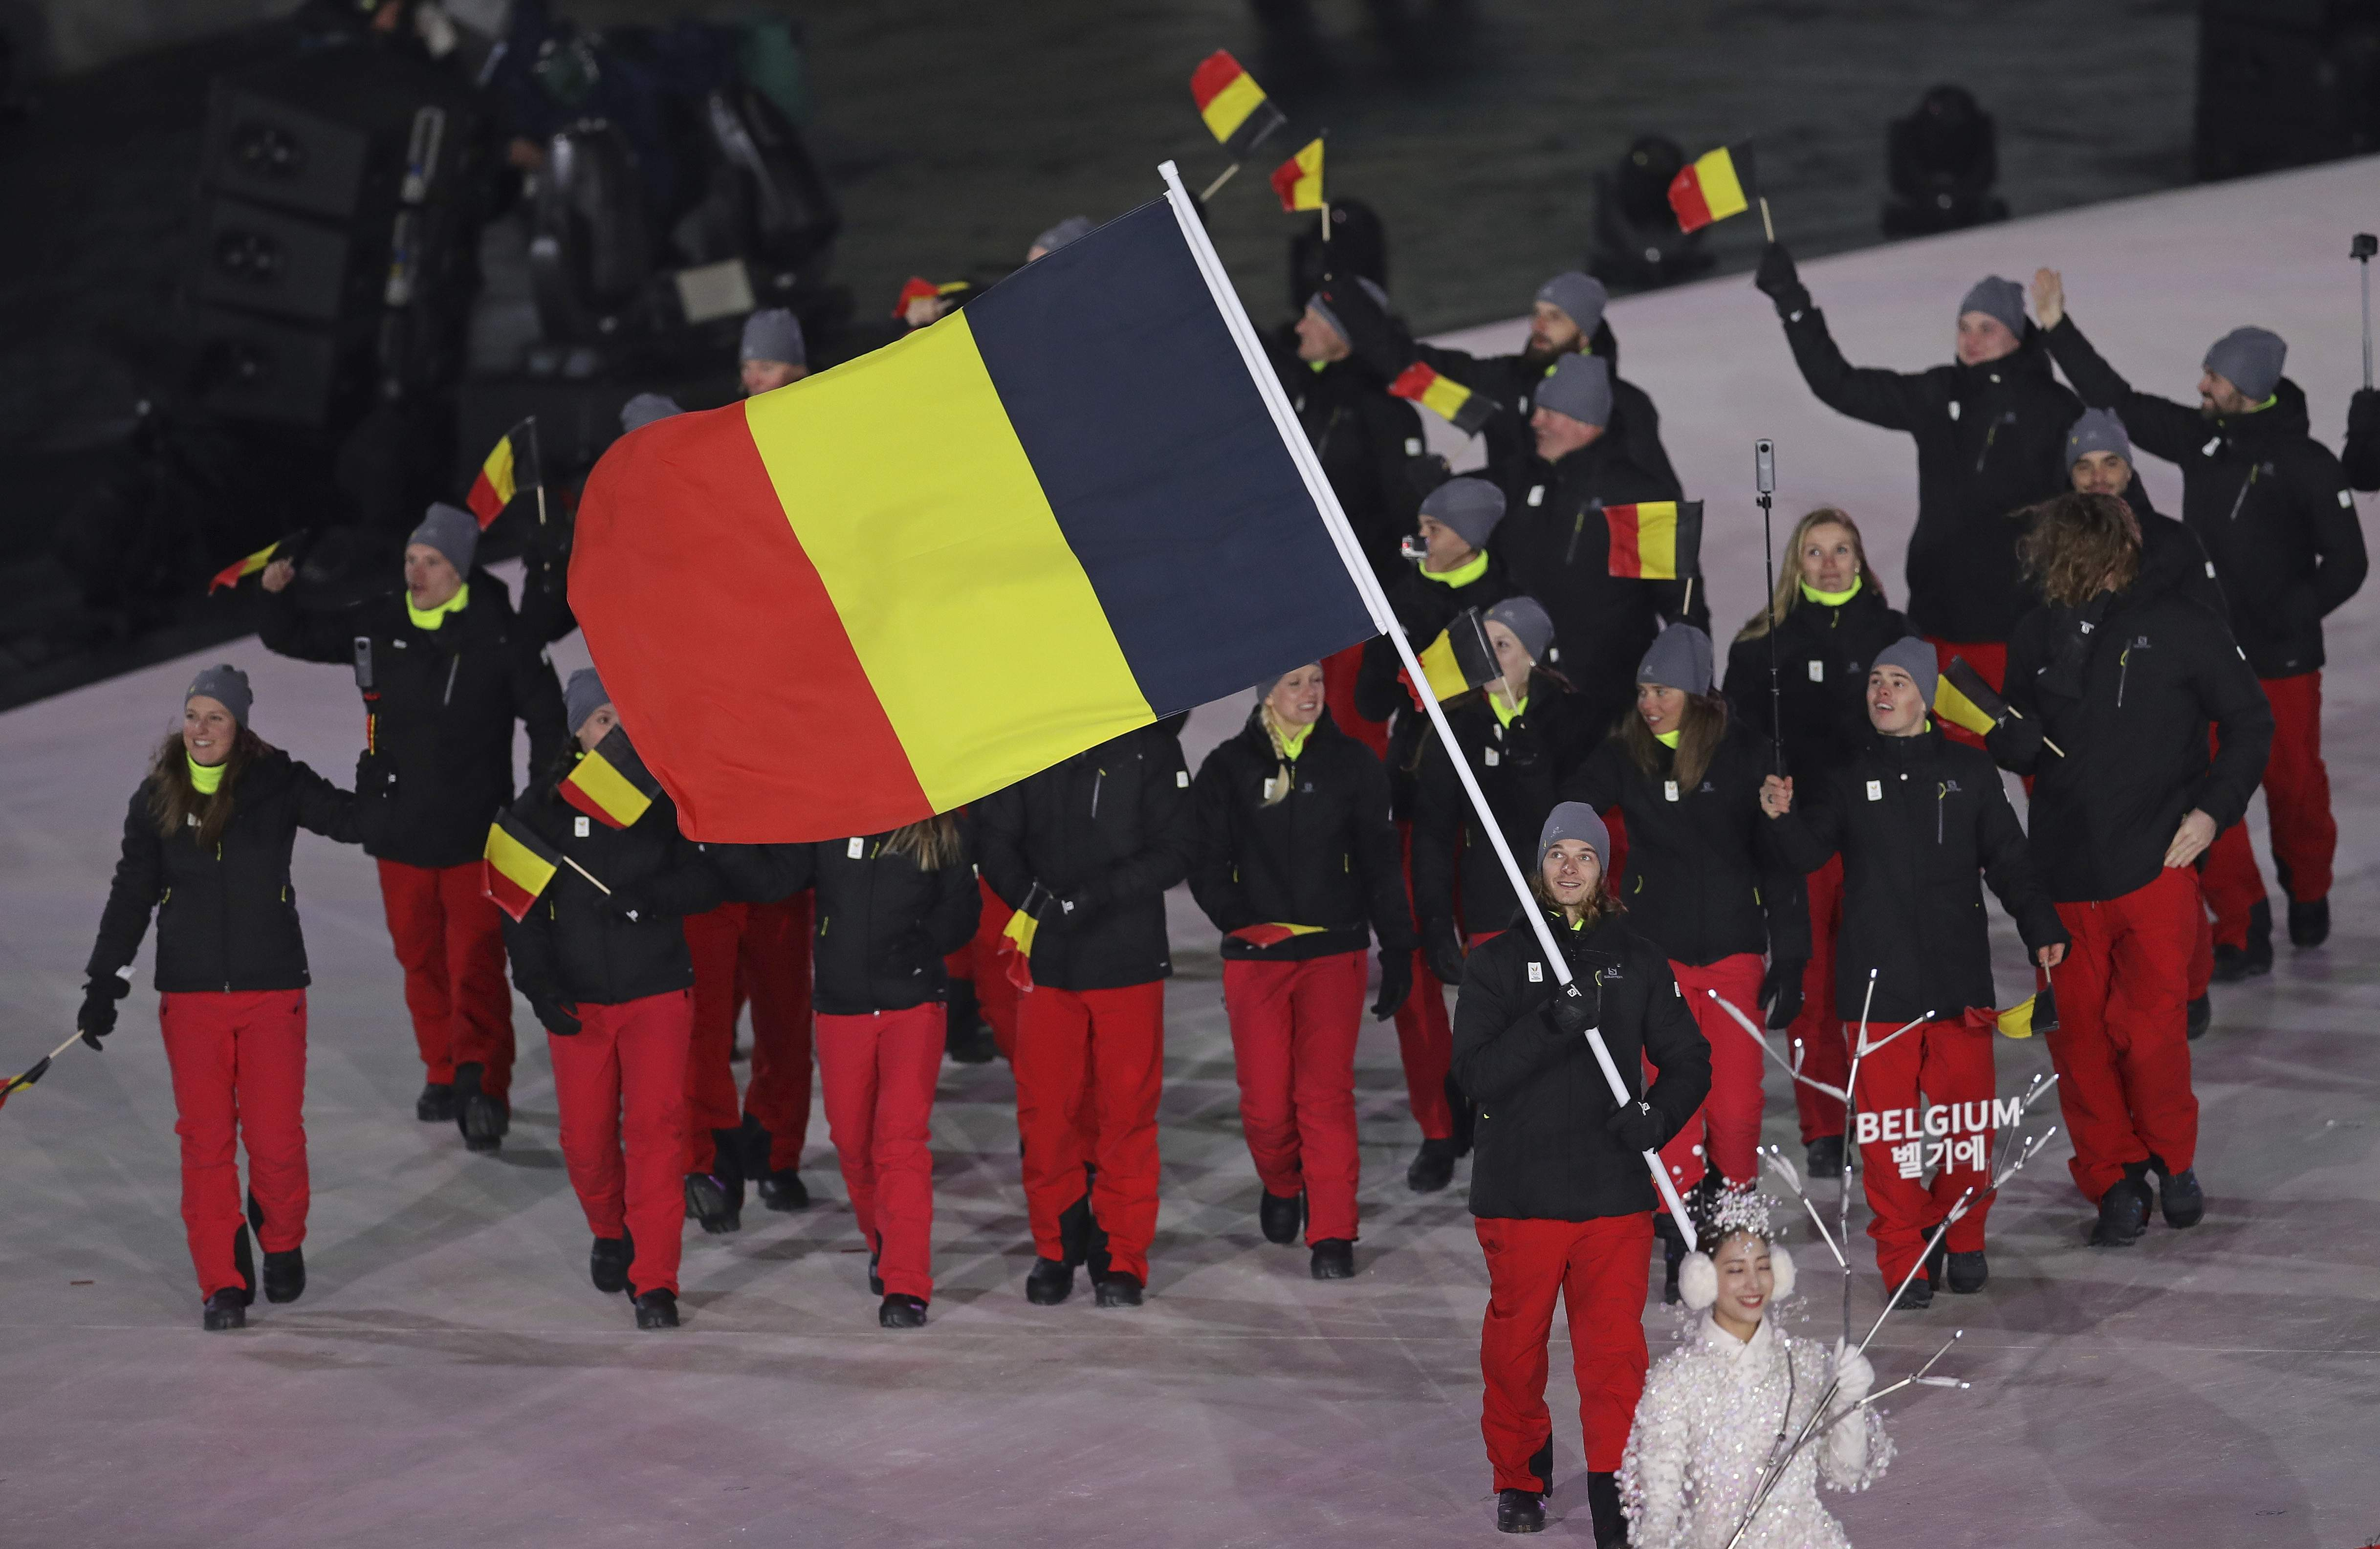 Seppe Smits carries the flag of Belgium during the opening ceremony of the 2018 Winter Olympics in Pyeongchang, South Korea, Friday, Feb. 9, 2018. (AP Photo/Michael Sohn)